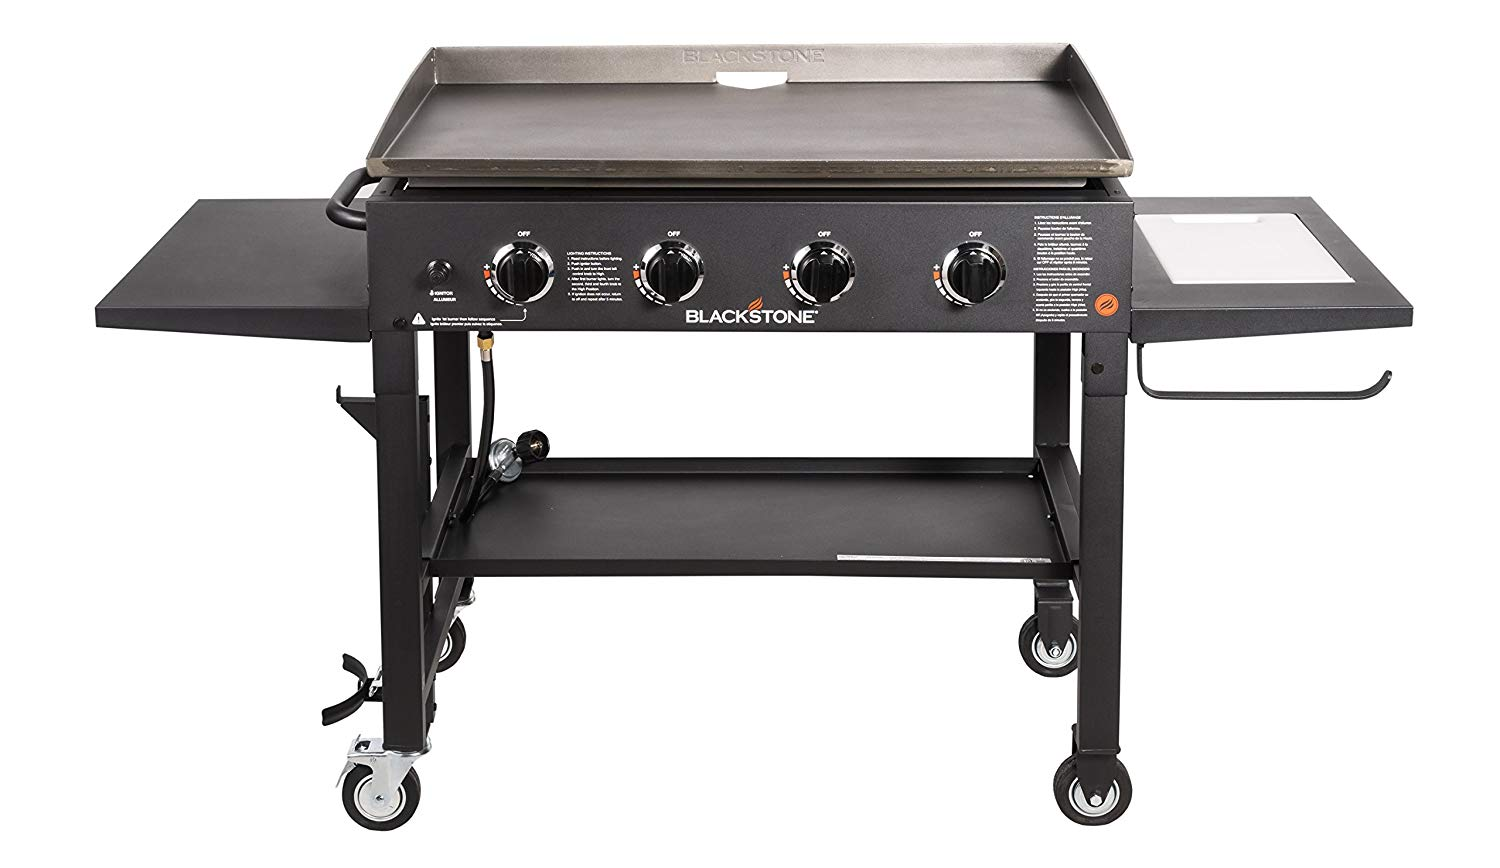 "blackstone 1825 36"" outdoor flat top gas grill griddle"